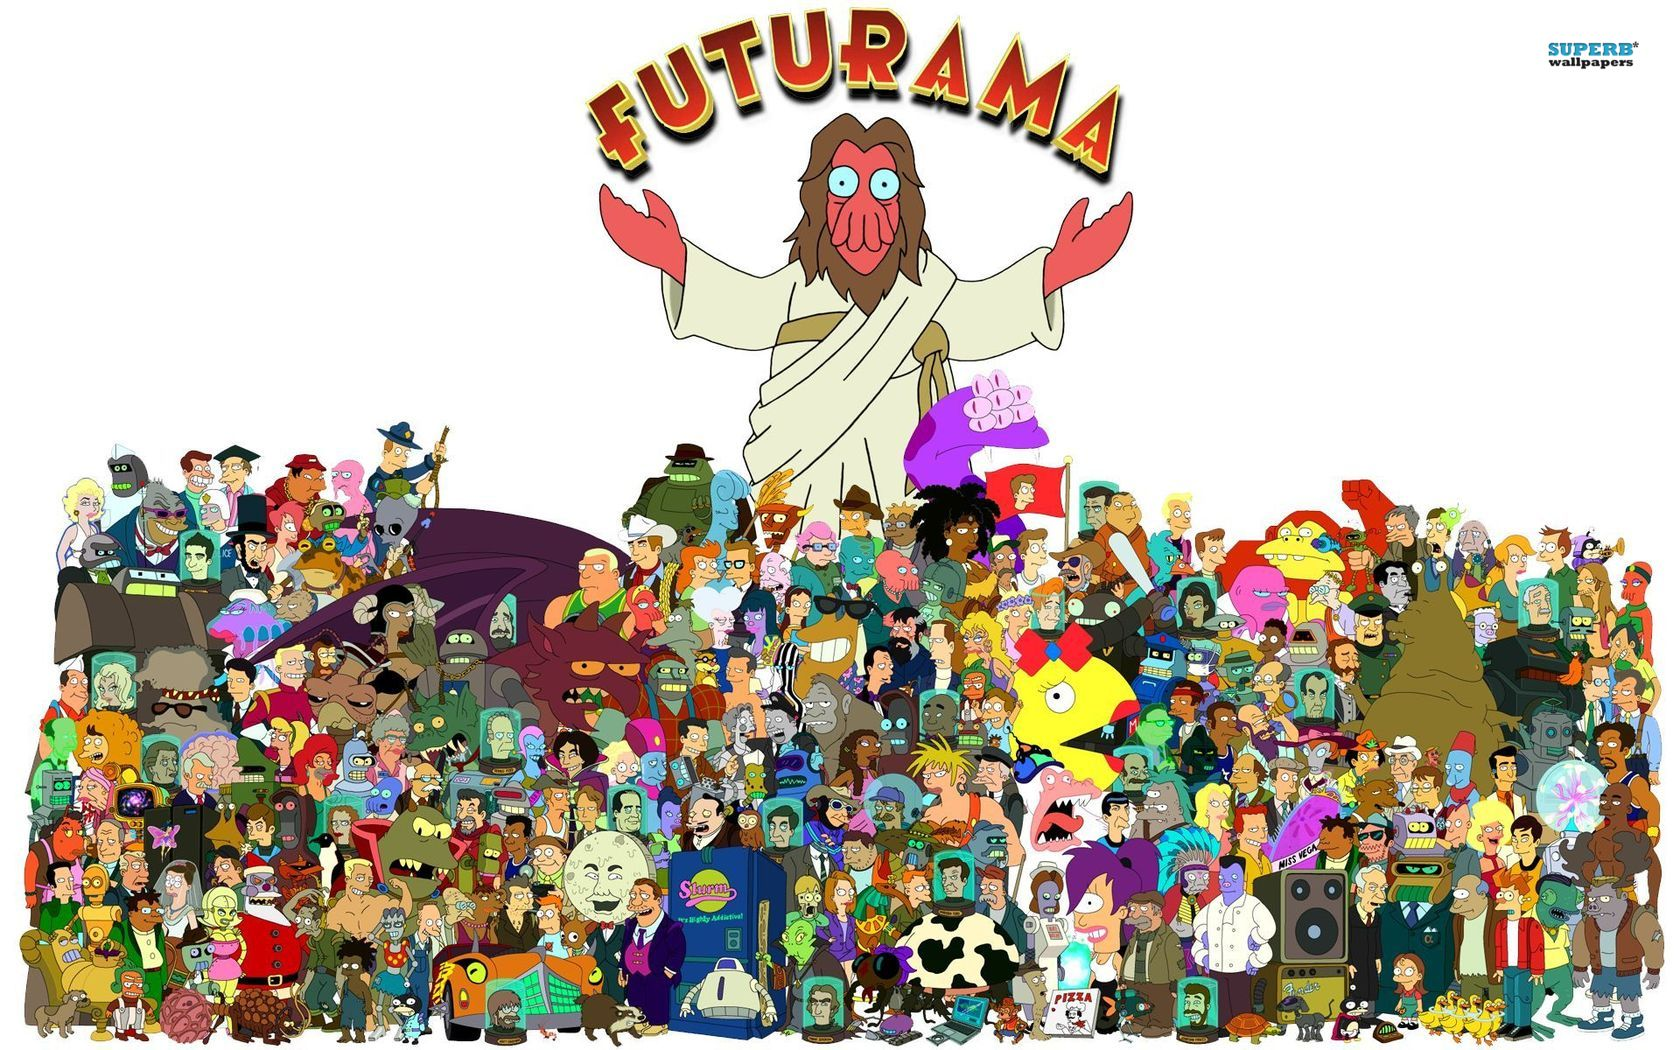 Futurama first aired on FOX in 1999, created by Matt Groening (more famously known for being the creator of The Simpsons), and David Cohen.